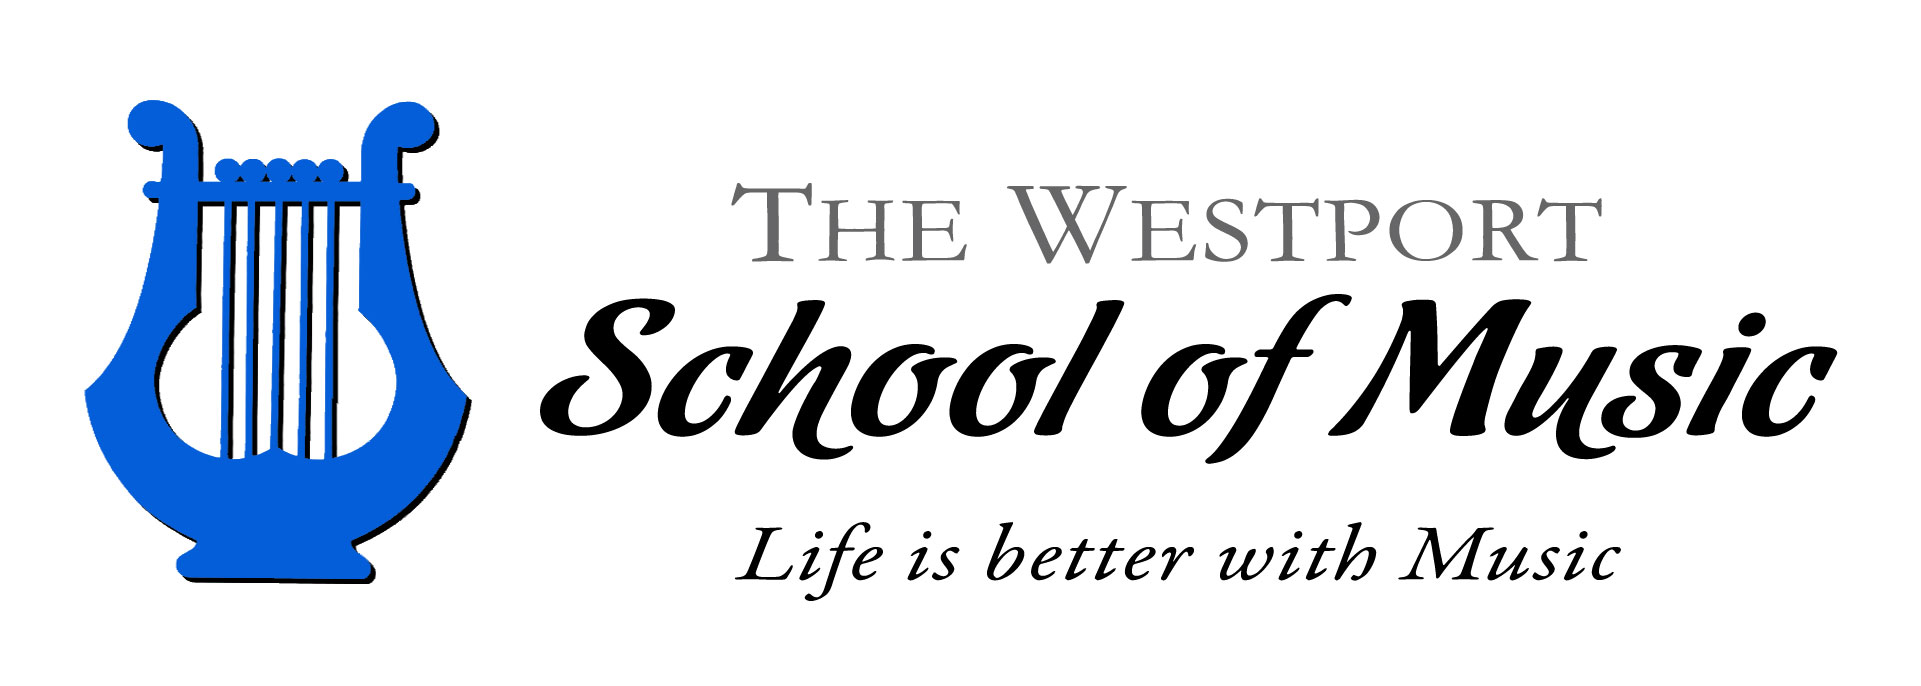 Westport School of Music (The)